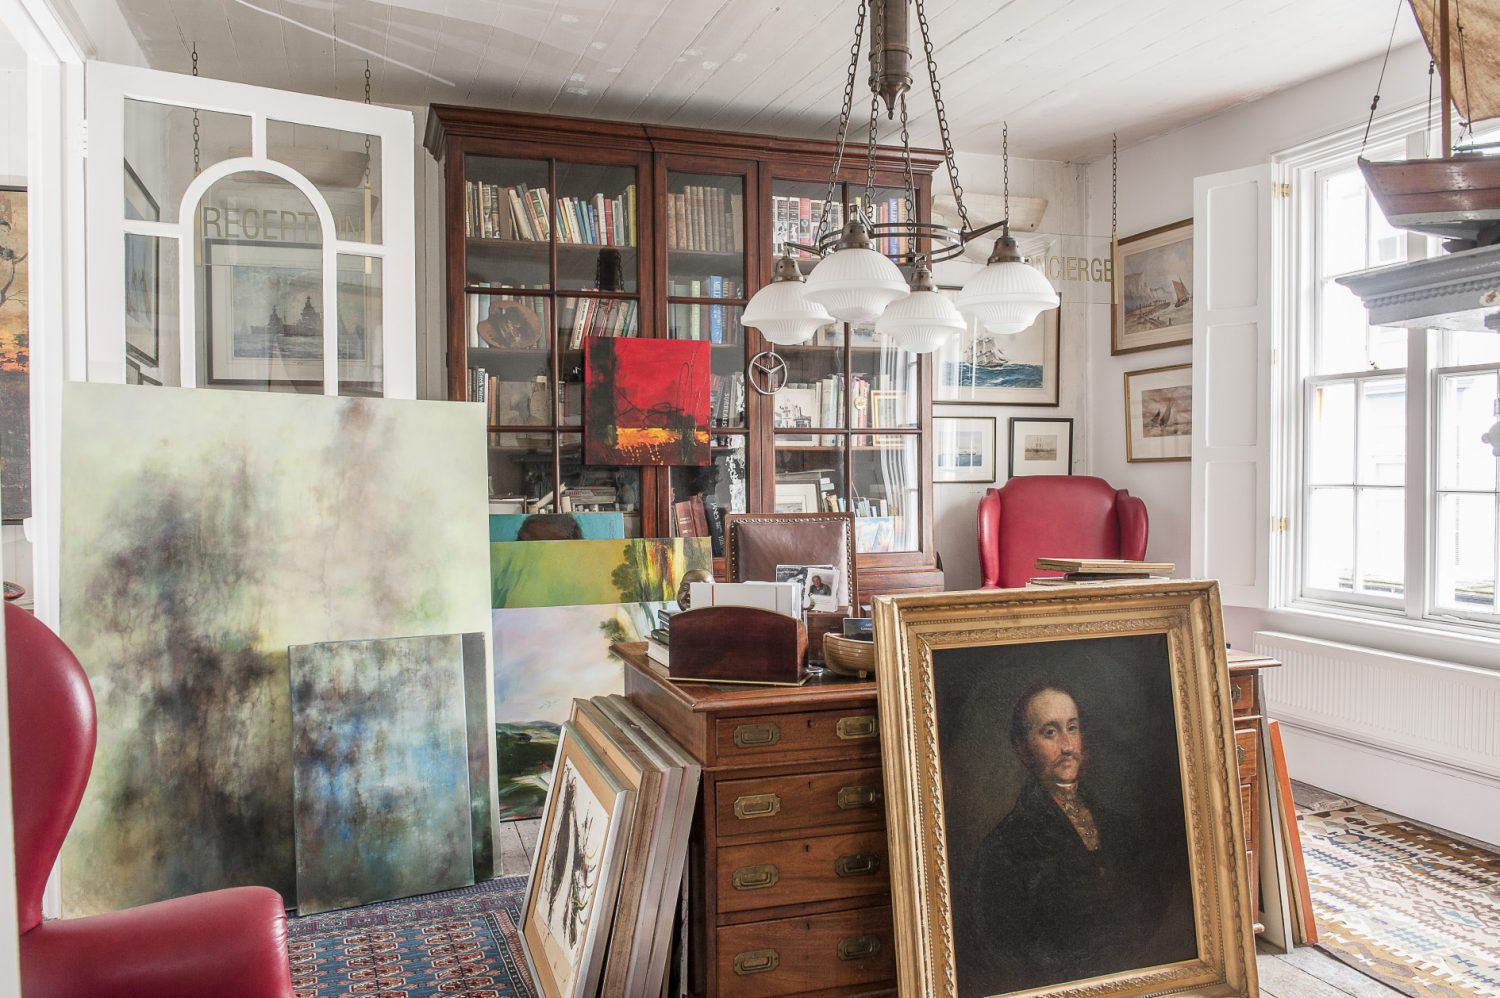 Rob's love of sailing becomes more evident as we travel through the house; his wonderful office with its captain's desk has a definite nautical feel about it, but the elegant dimensions of the room – the high Georgian ceiling, elegant decor and large window, albeit with a sea view – are more Admiralty office than Captain's cabin